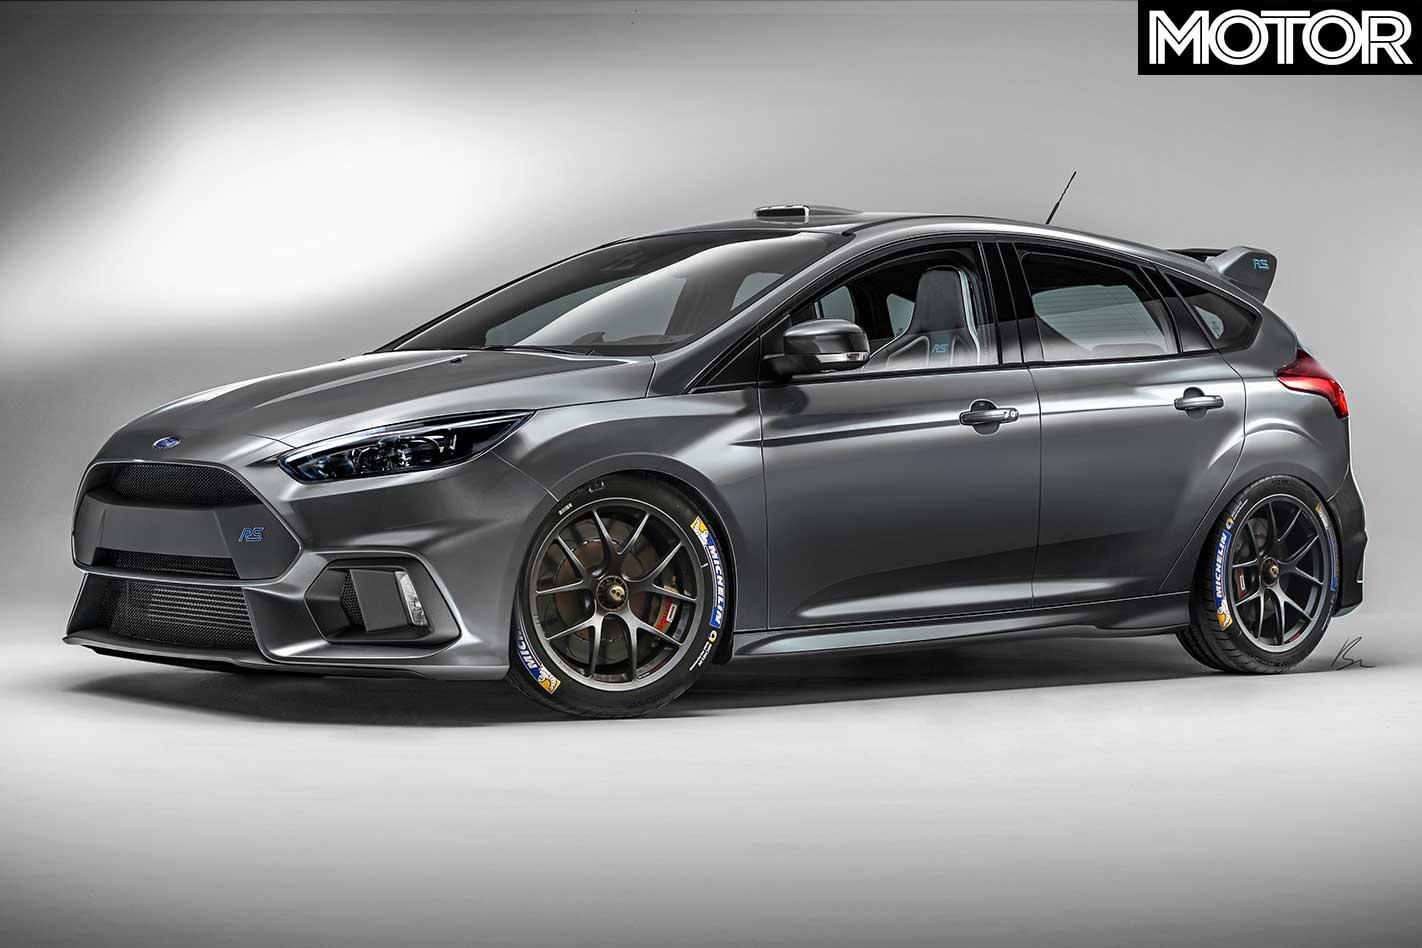 43 All New 2020 Ford Focus RS Interior